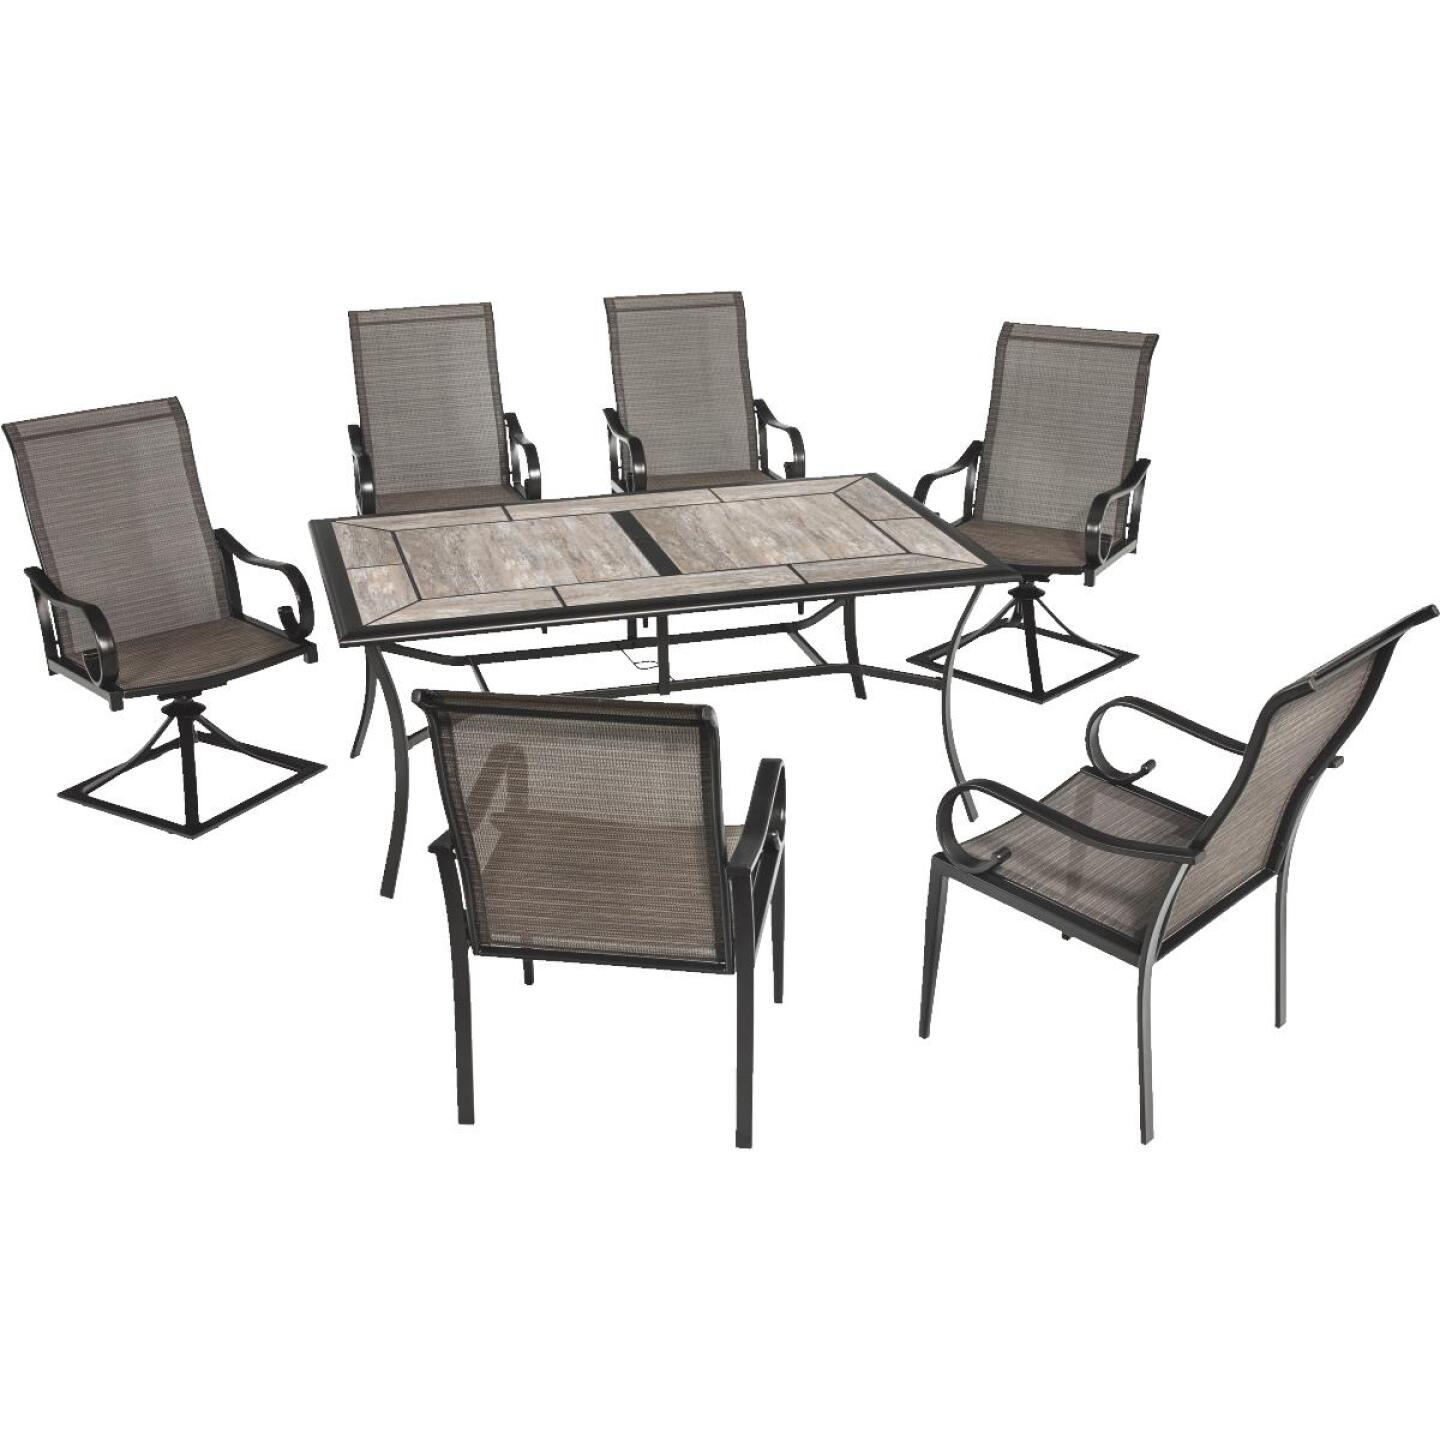 Outdoor Expressions Berkshire 7-Piece Dining Set Image 219